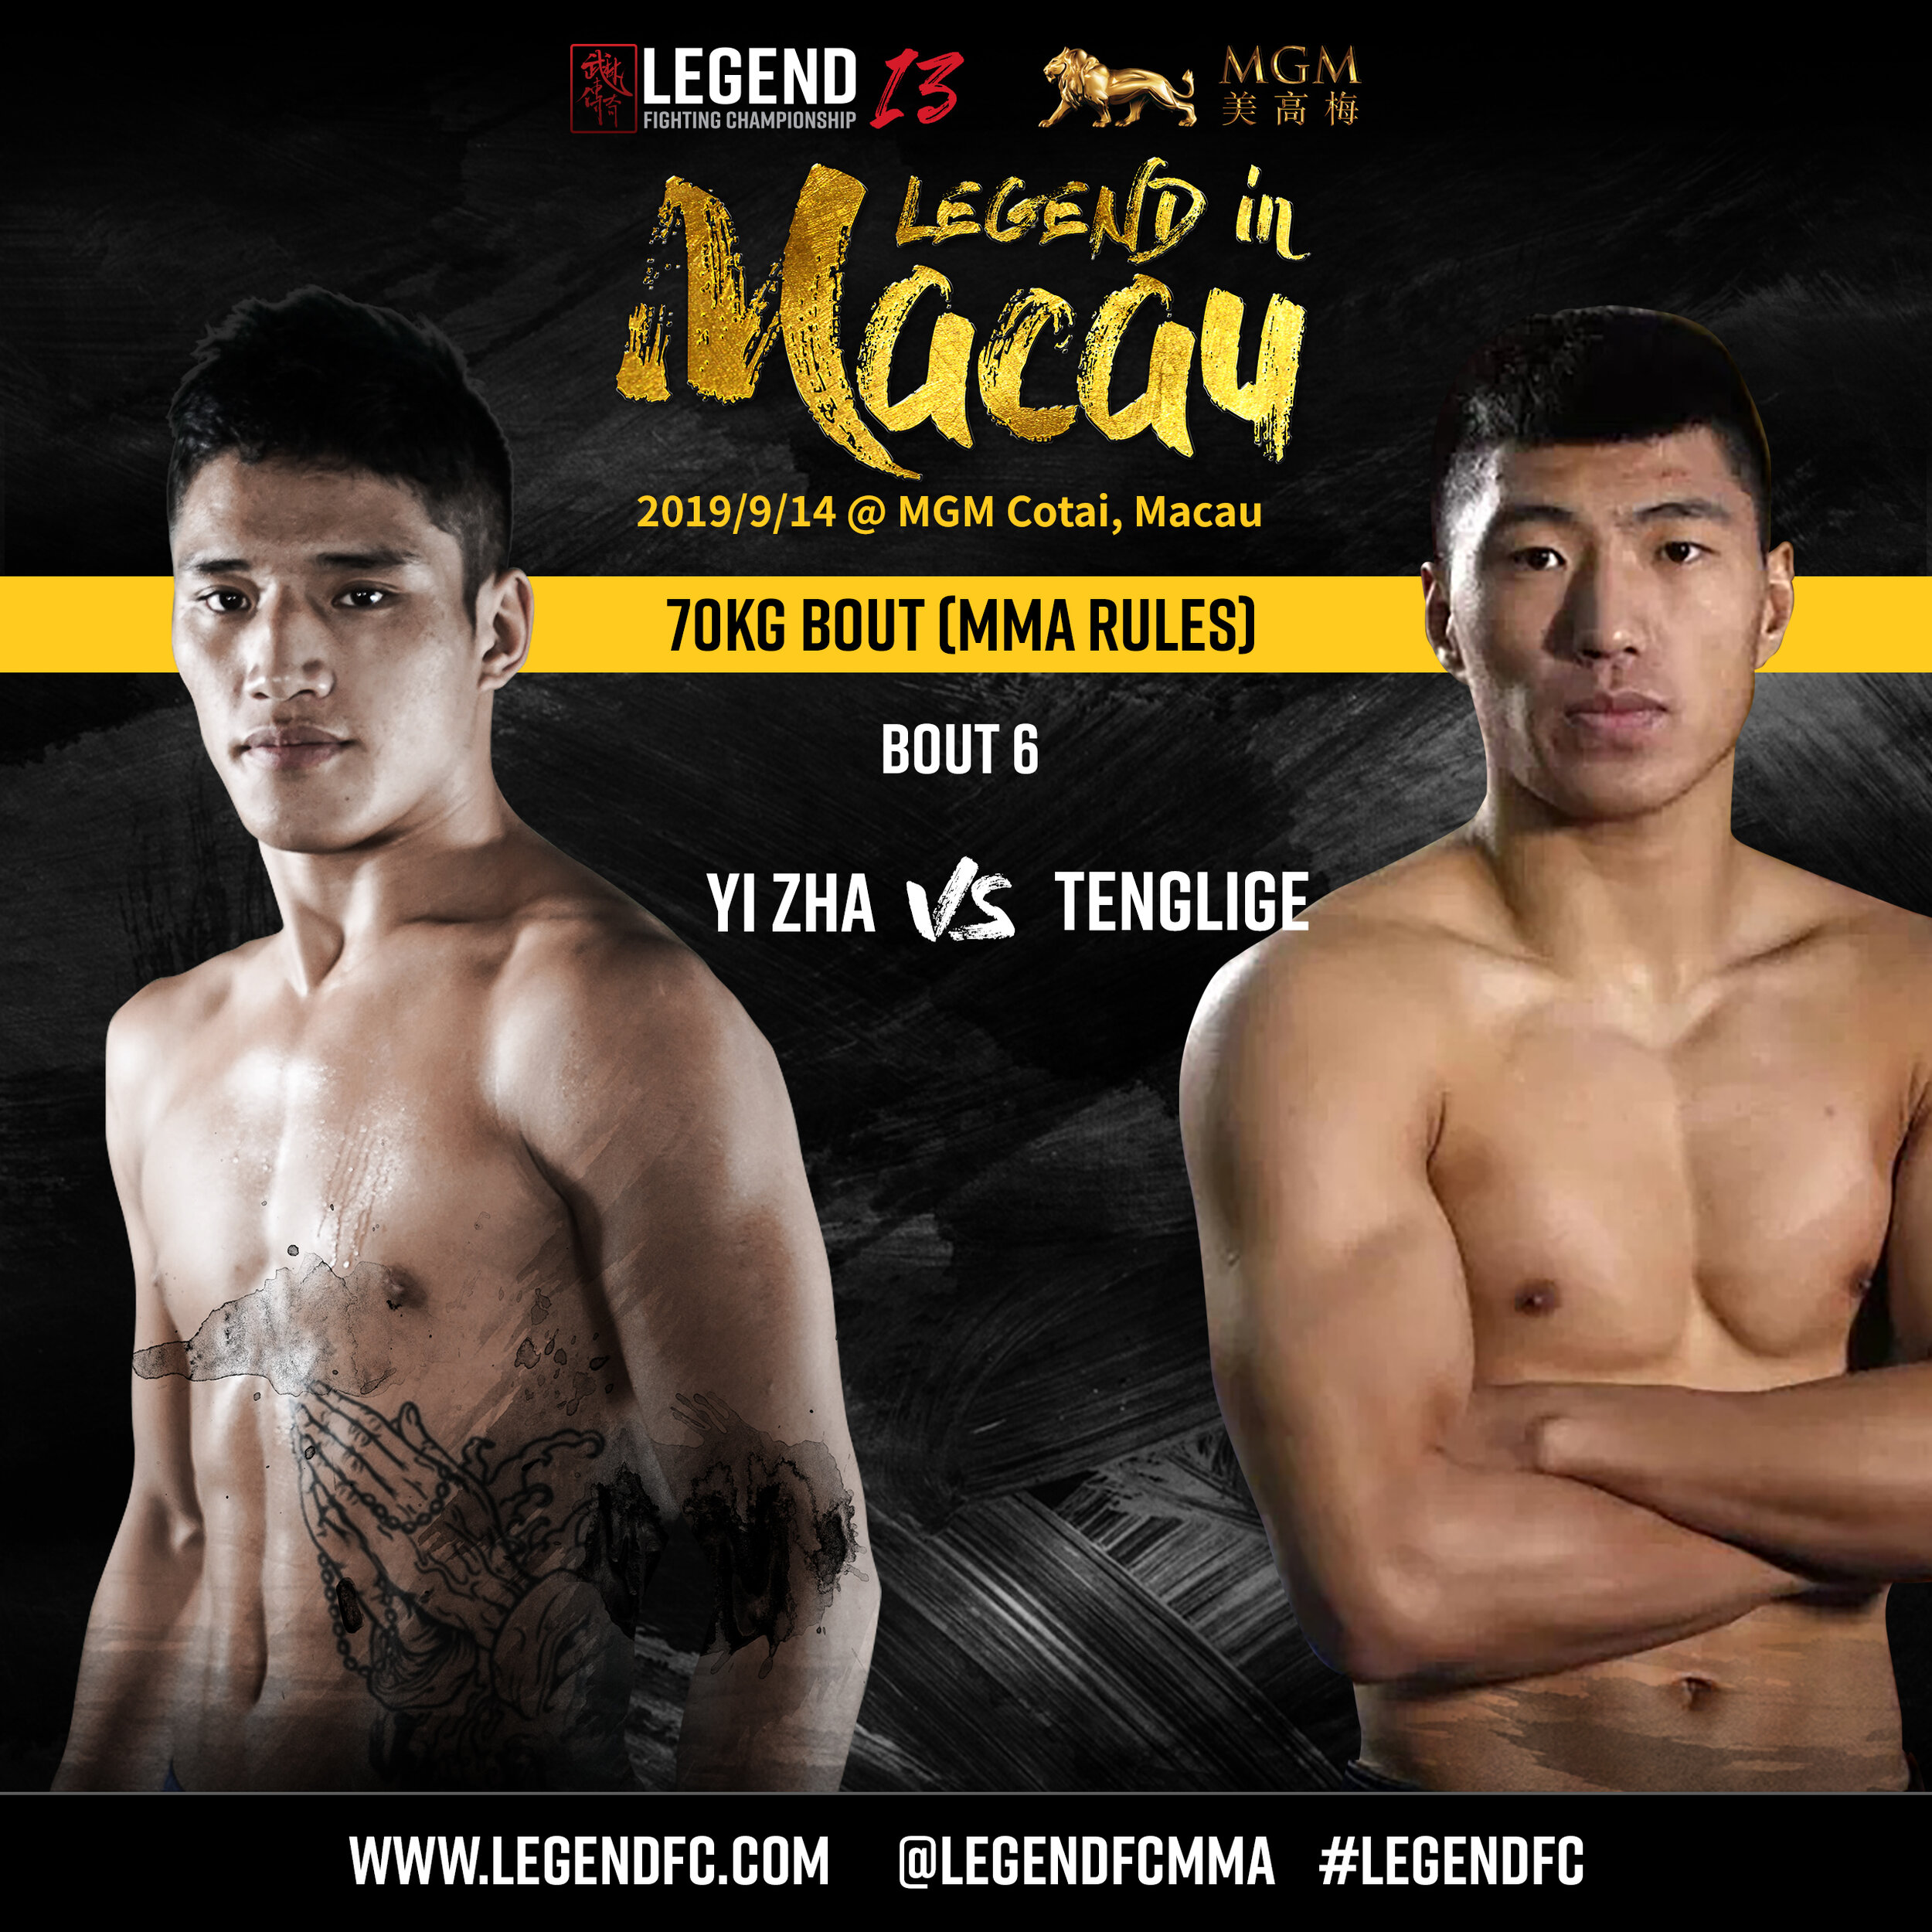 Yi Zha VS Tenglige   Legend 12 fighter Yi Zha returns to Legend 13 for an interesting clash with Teng Lige.  Yi Zha will look to use the full range of his martial arts skills against a striker like Teng Lige.